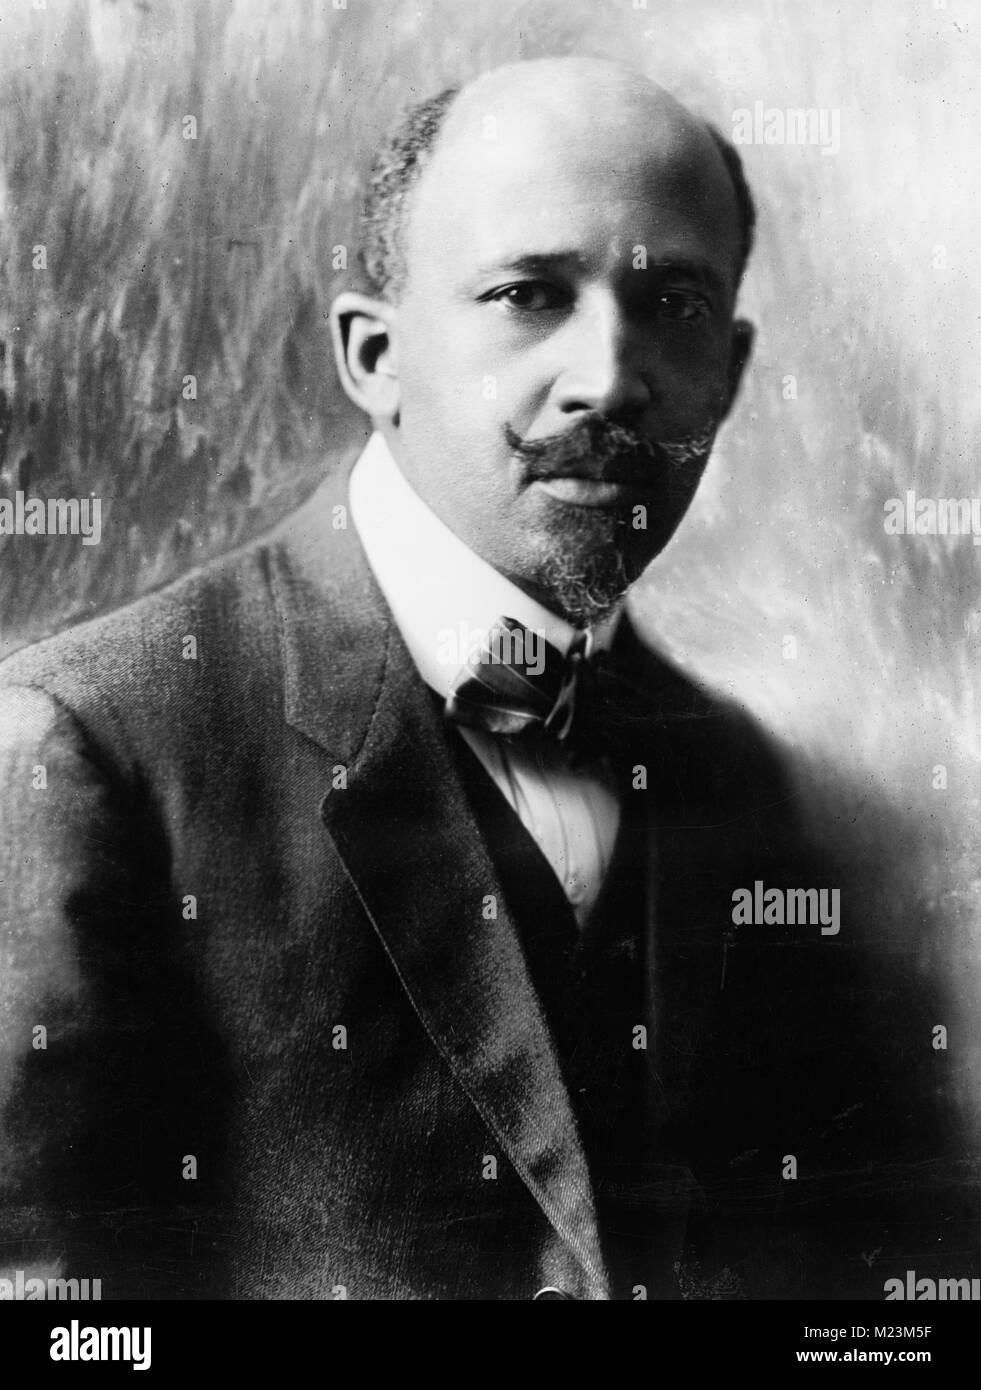 W. E. B. Du Bois (1868 – 1963), co-founder of the National Association for the Advancement of Colored People - Stock Image